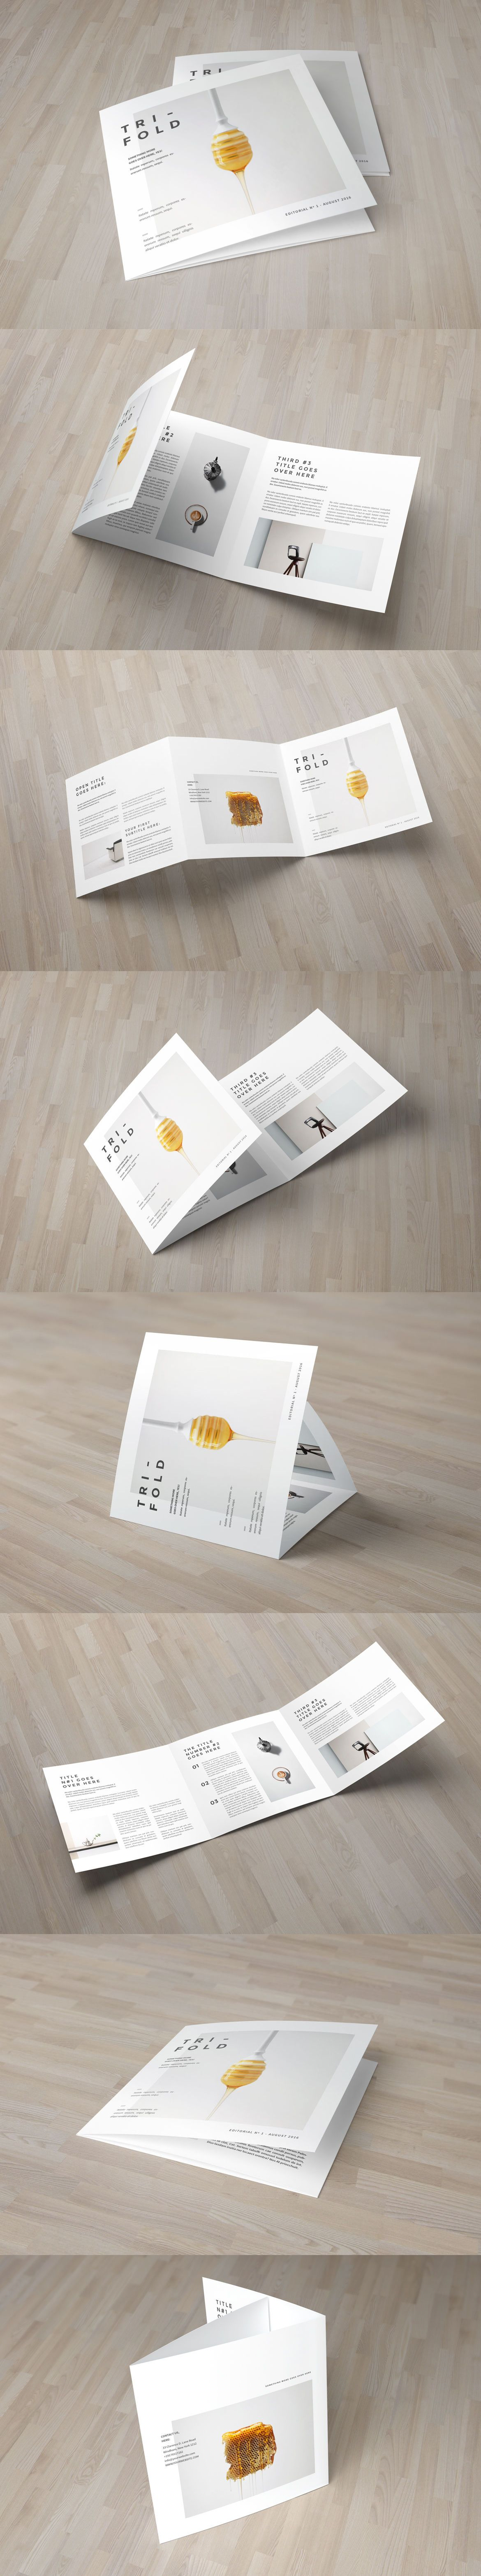 Square Minimal Cool White Trifold Brochure Template InDesign INDD ...